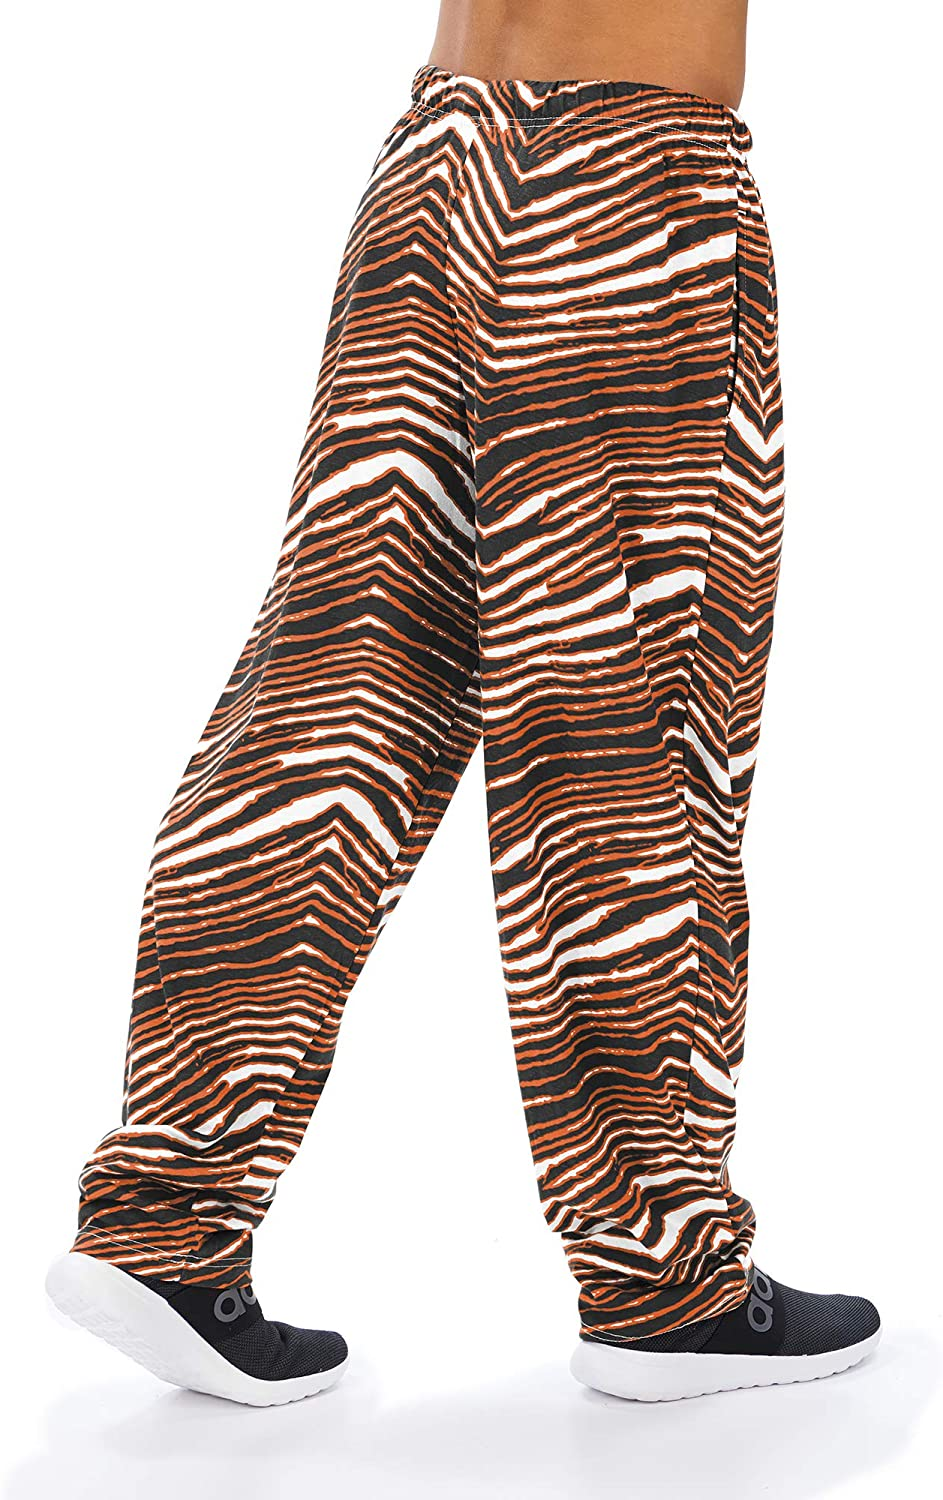 Sizes Small to XX-Large Zubaz Officially Licensed NCAA Mens Zebra Pants Multi Color